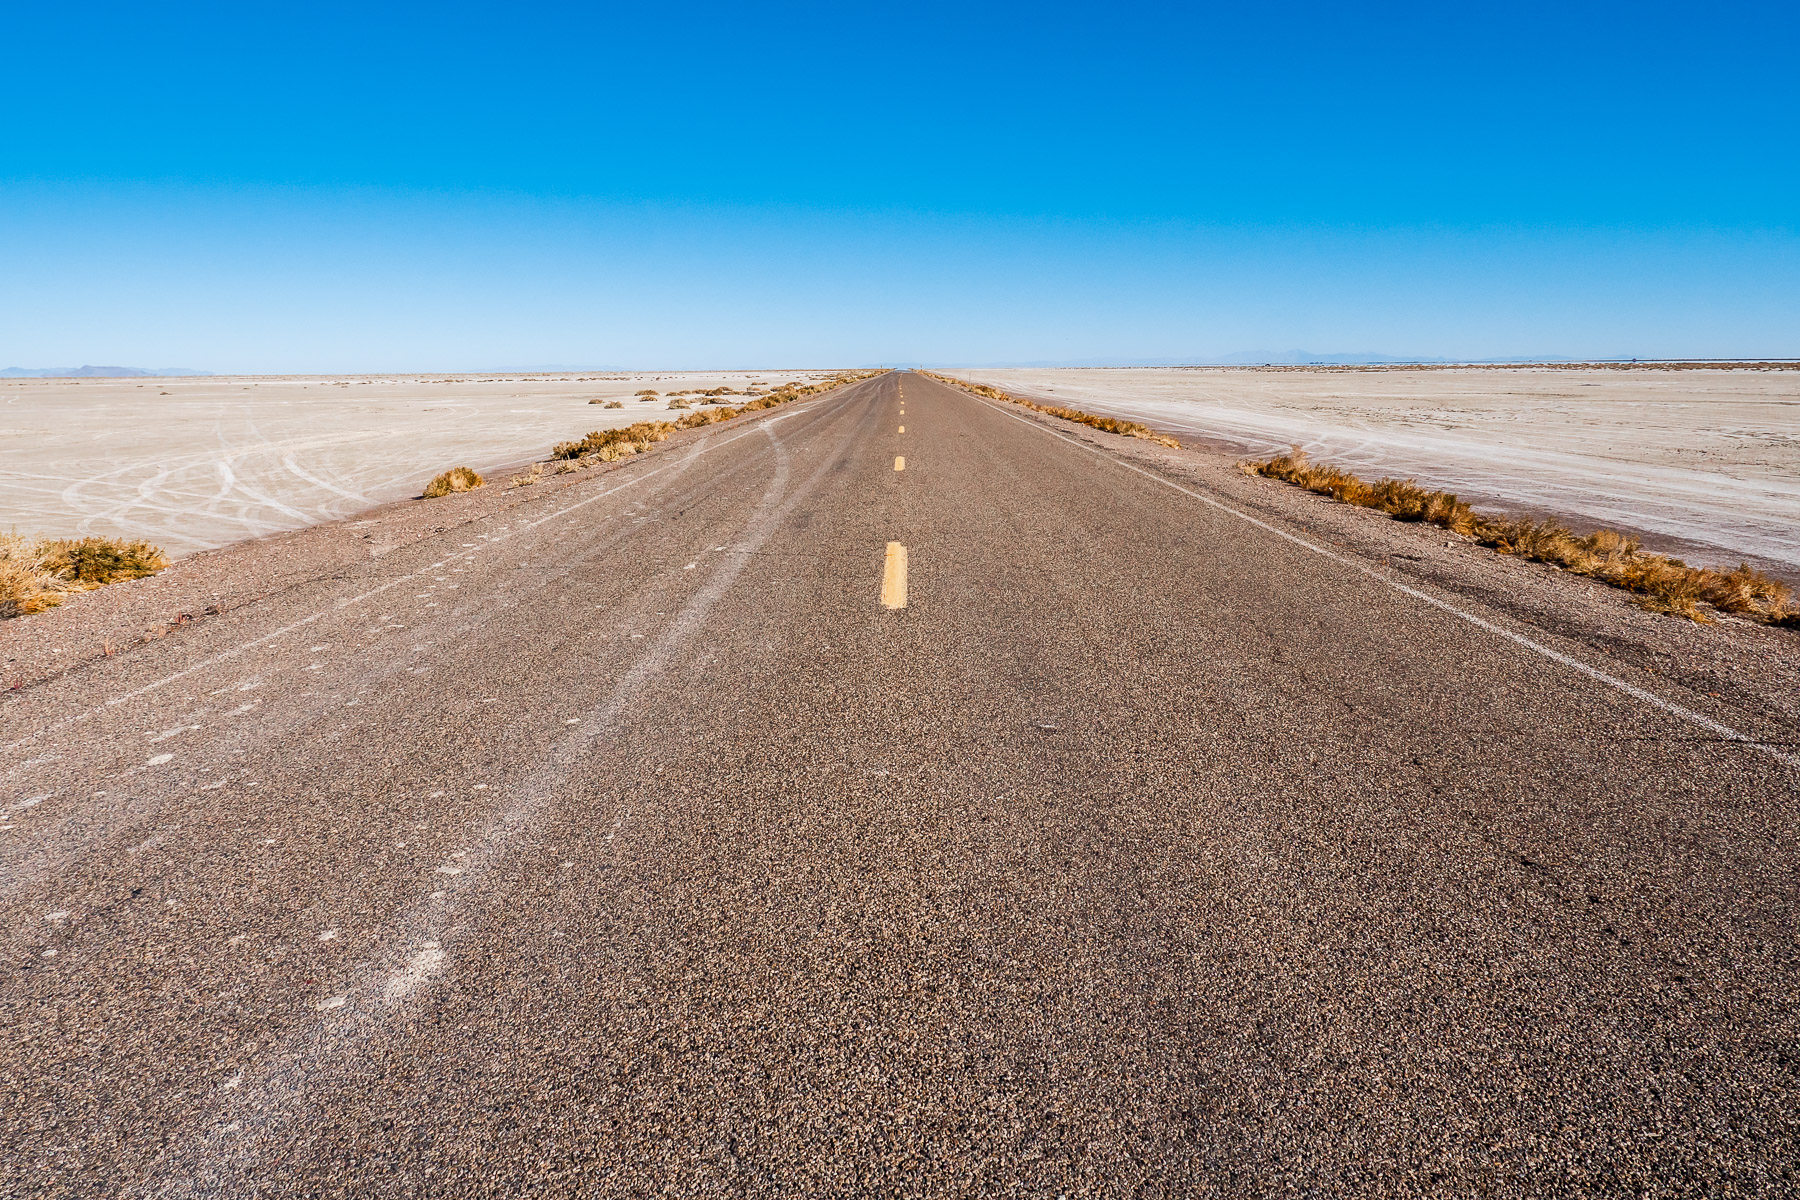 A road stretches across the arid expanse of Utah's Bonneville Salt Flats.